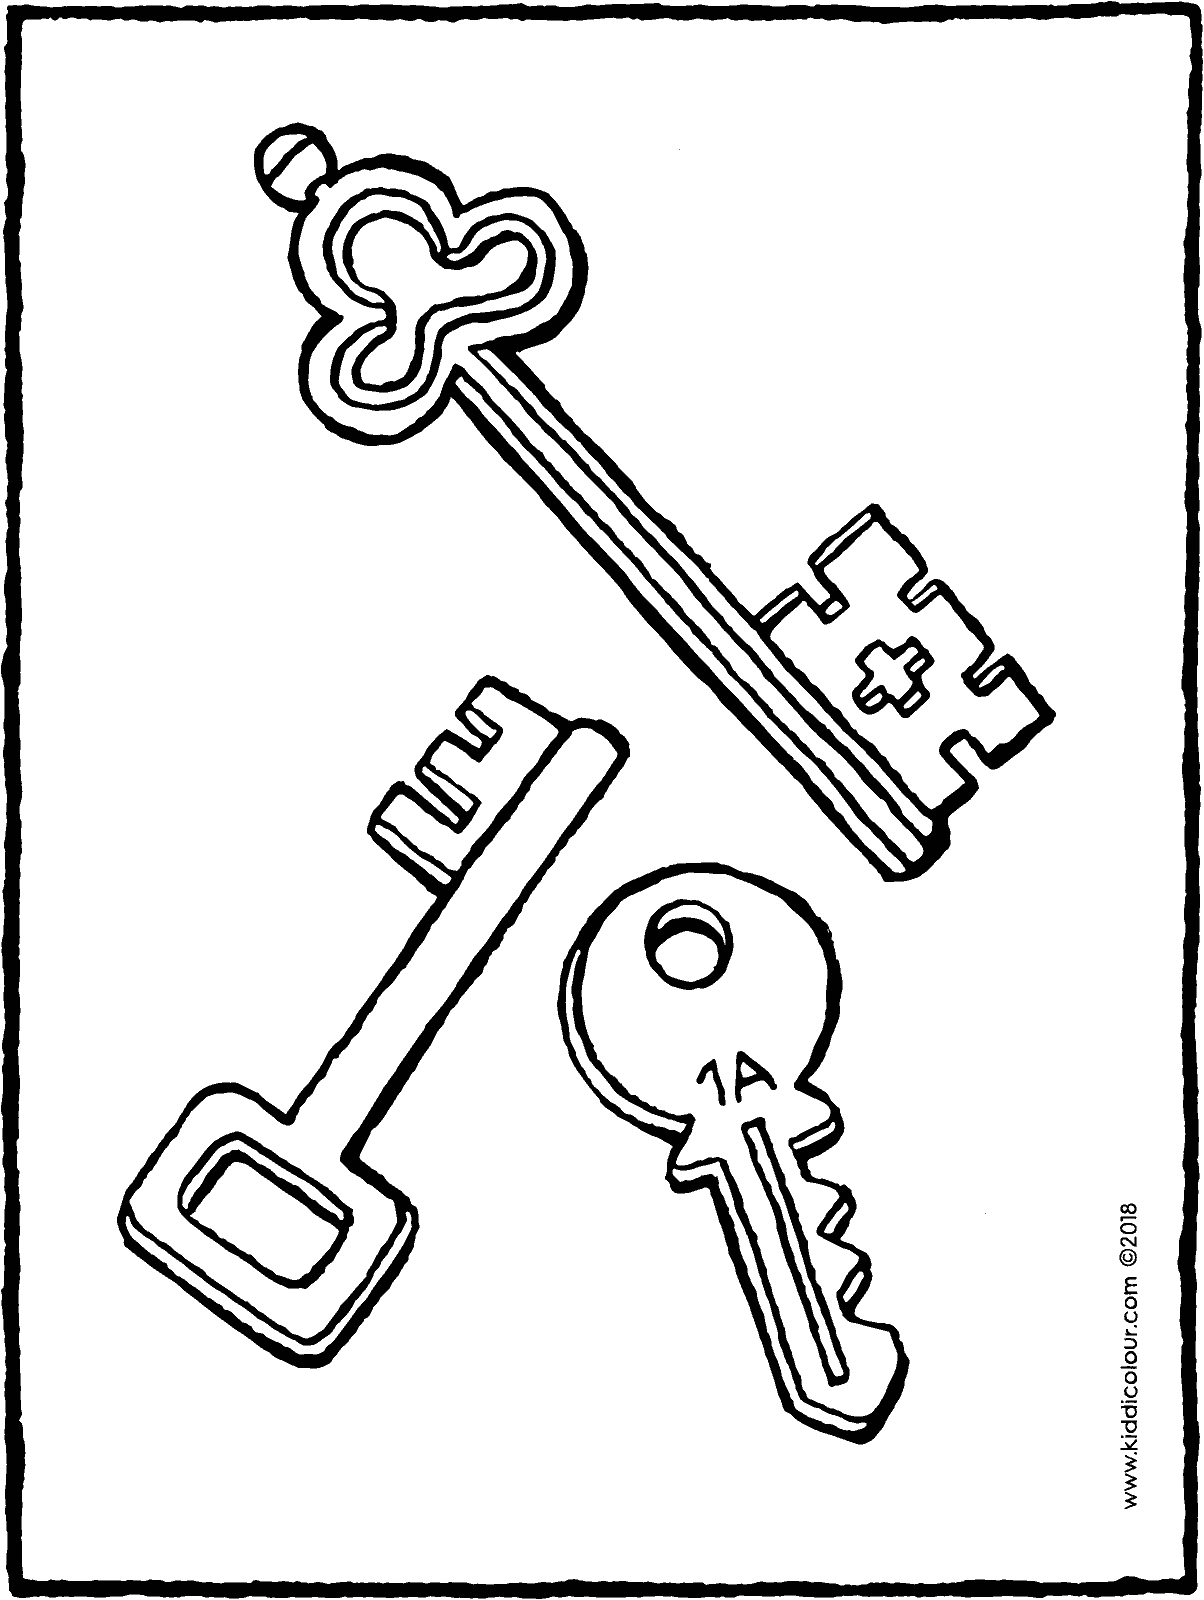 three keys colouring page drawing picture 01H